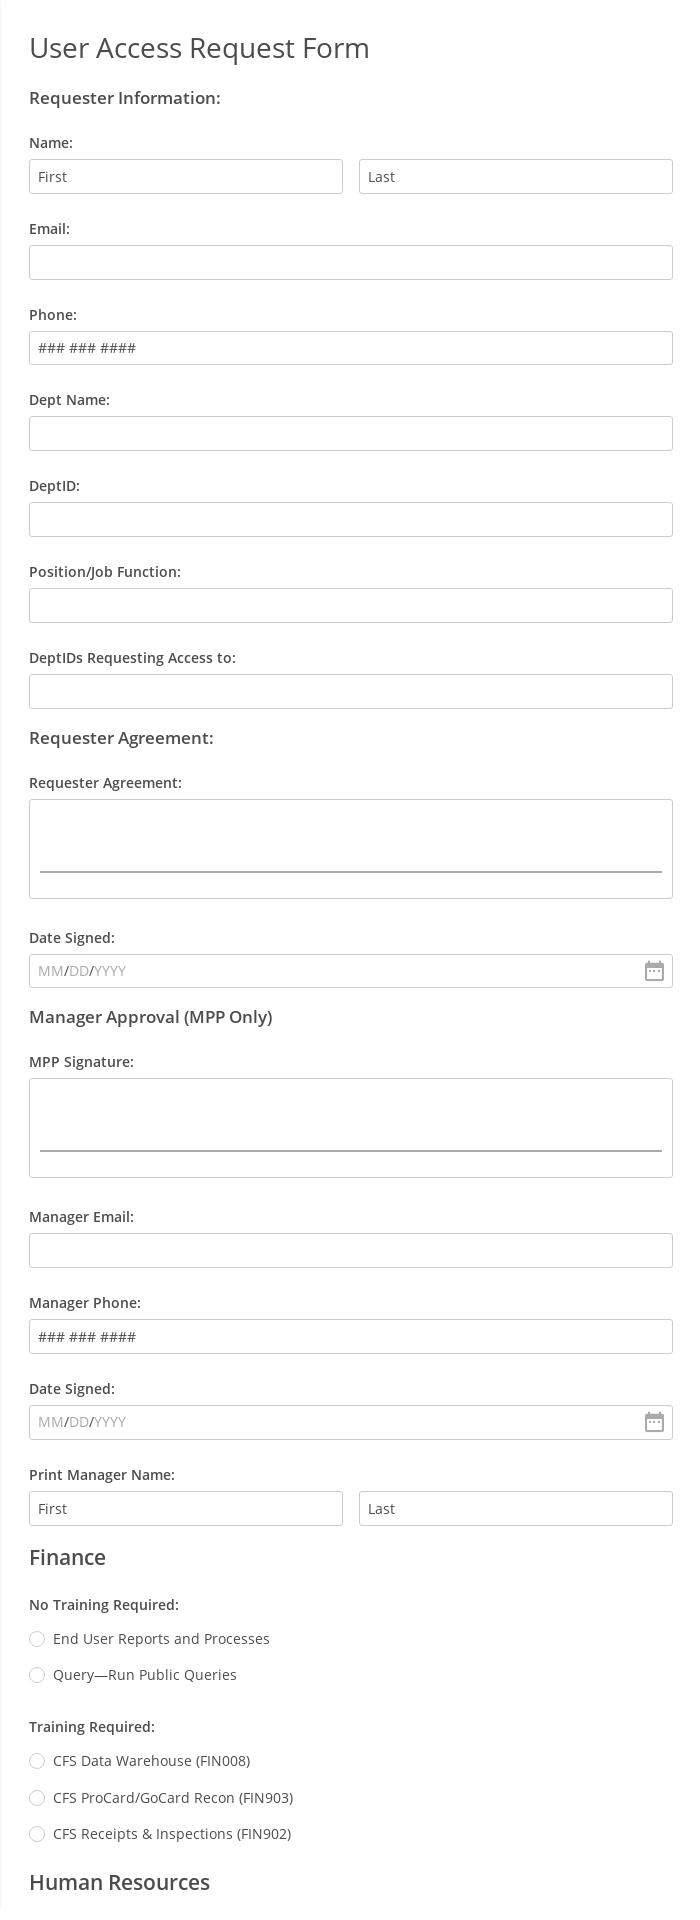 User Access Request Form